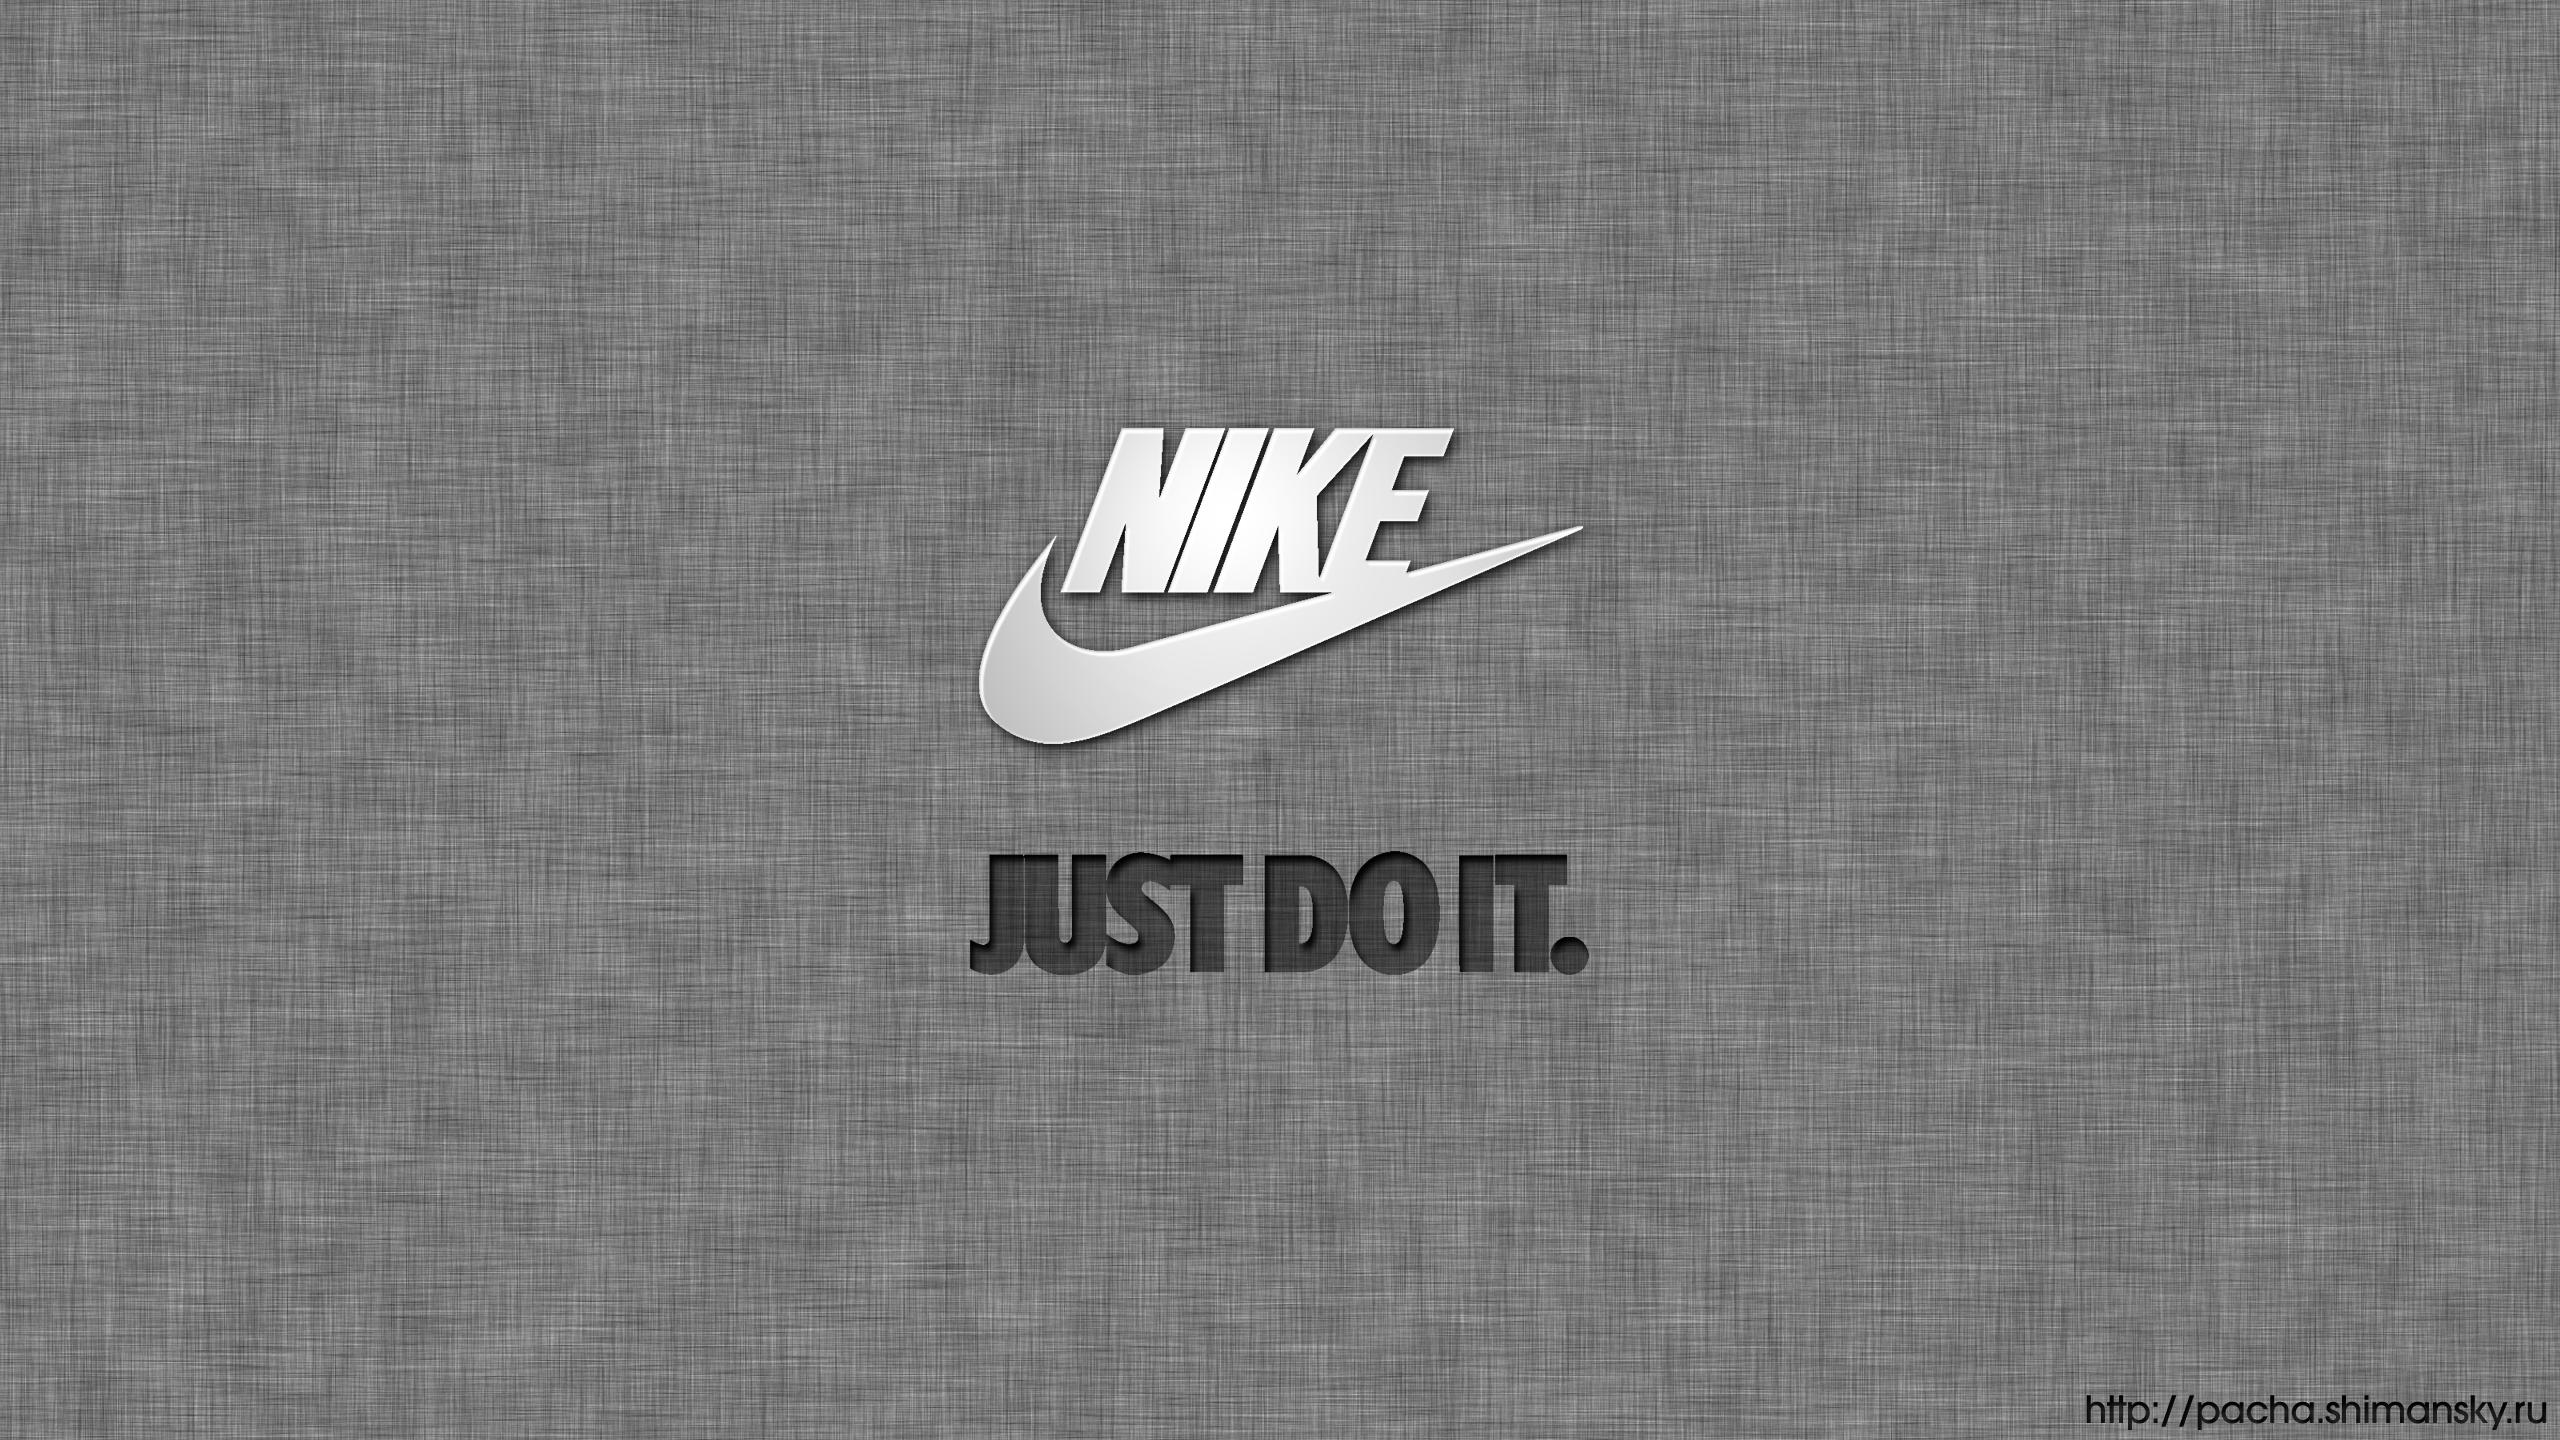 nike wallpaper just do it slogan Nike Logo Wallpapers HD 2015 free download